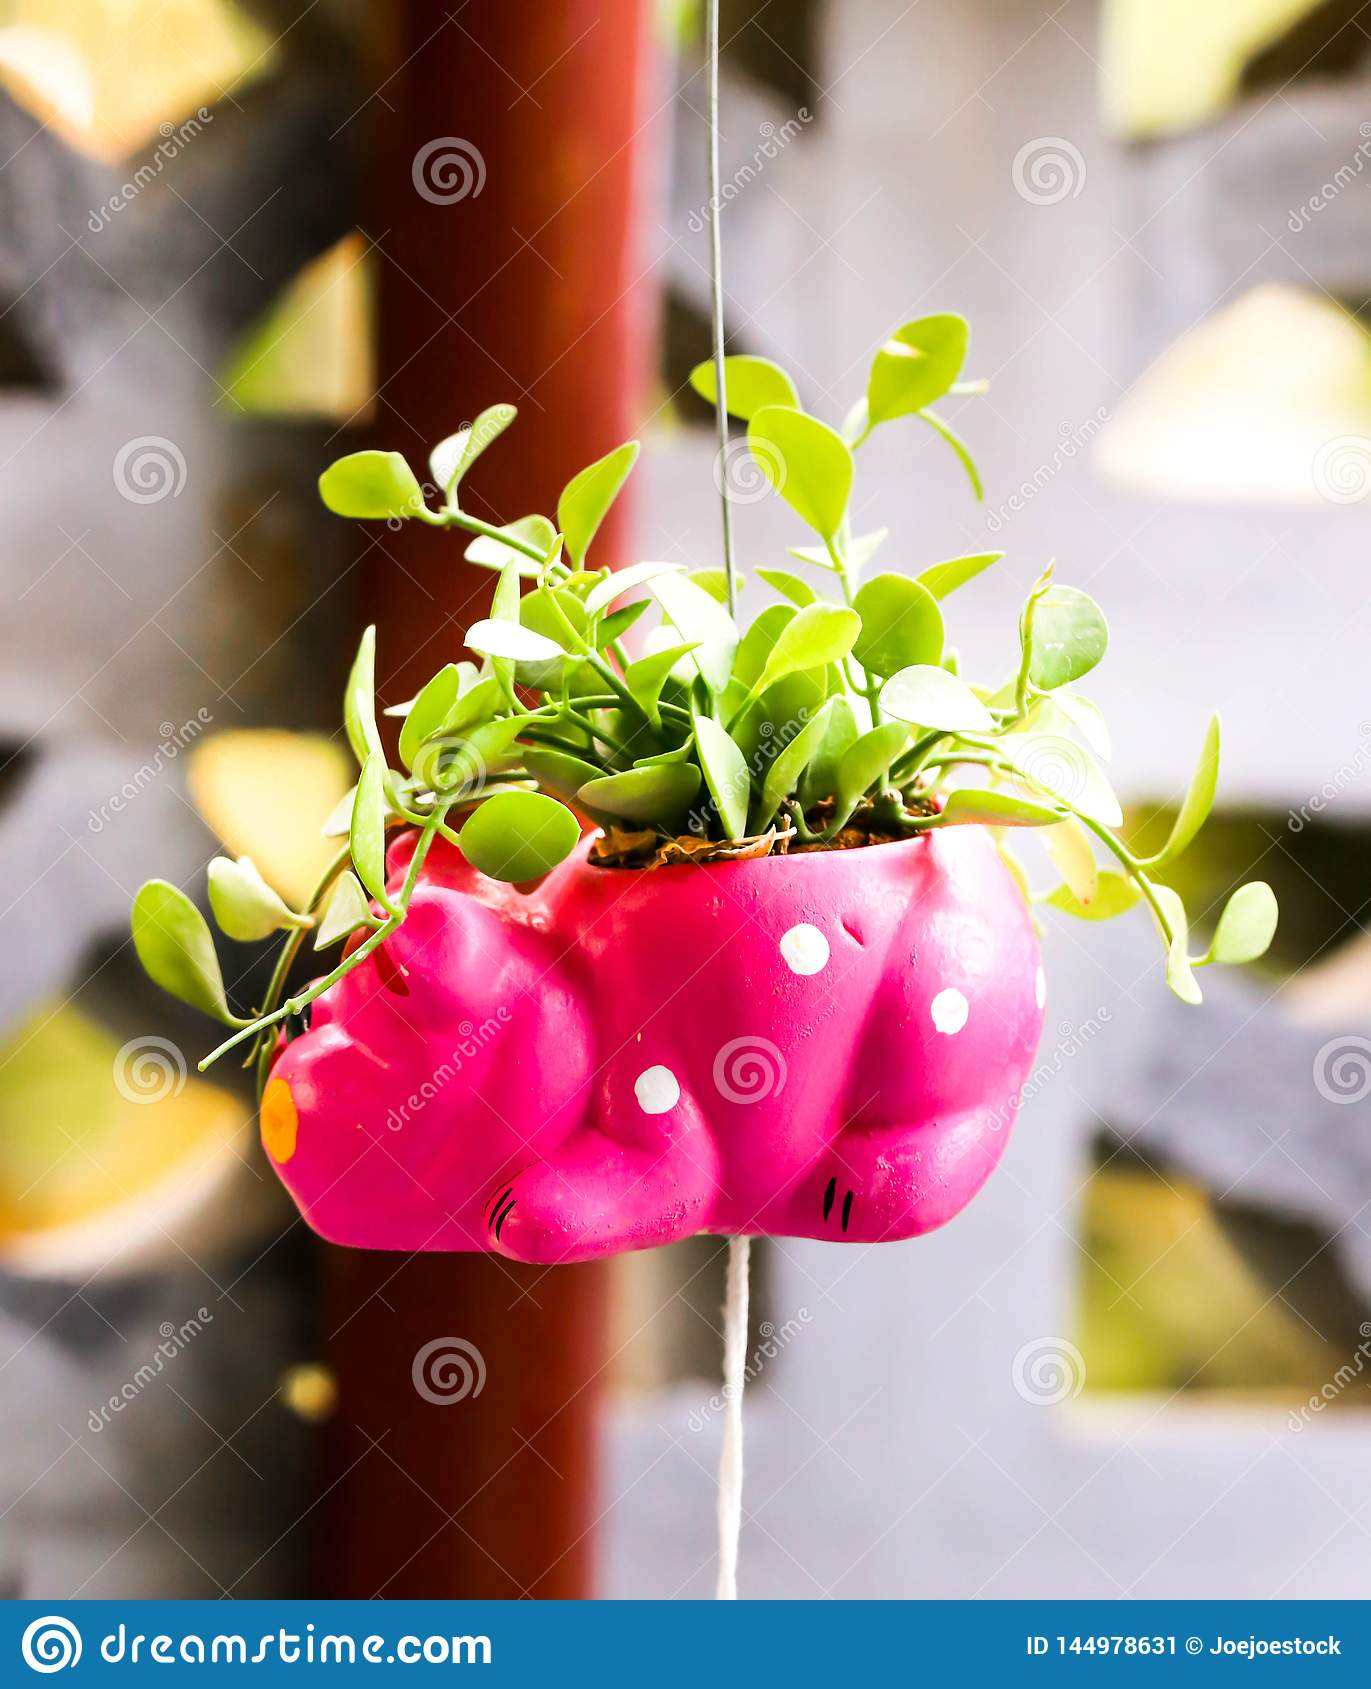 Closeup of cute pink flowerpot with green leaves